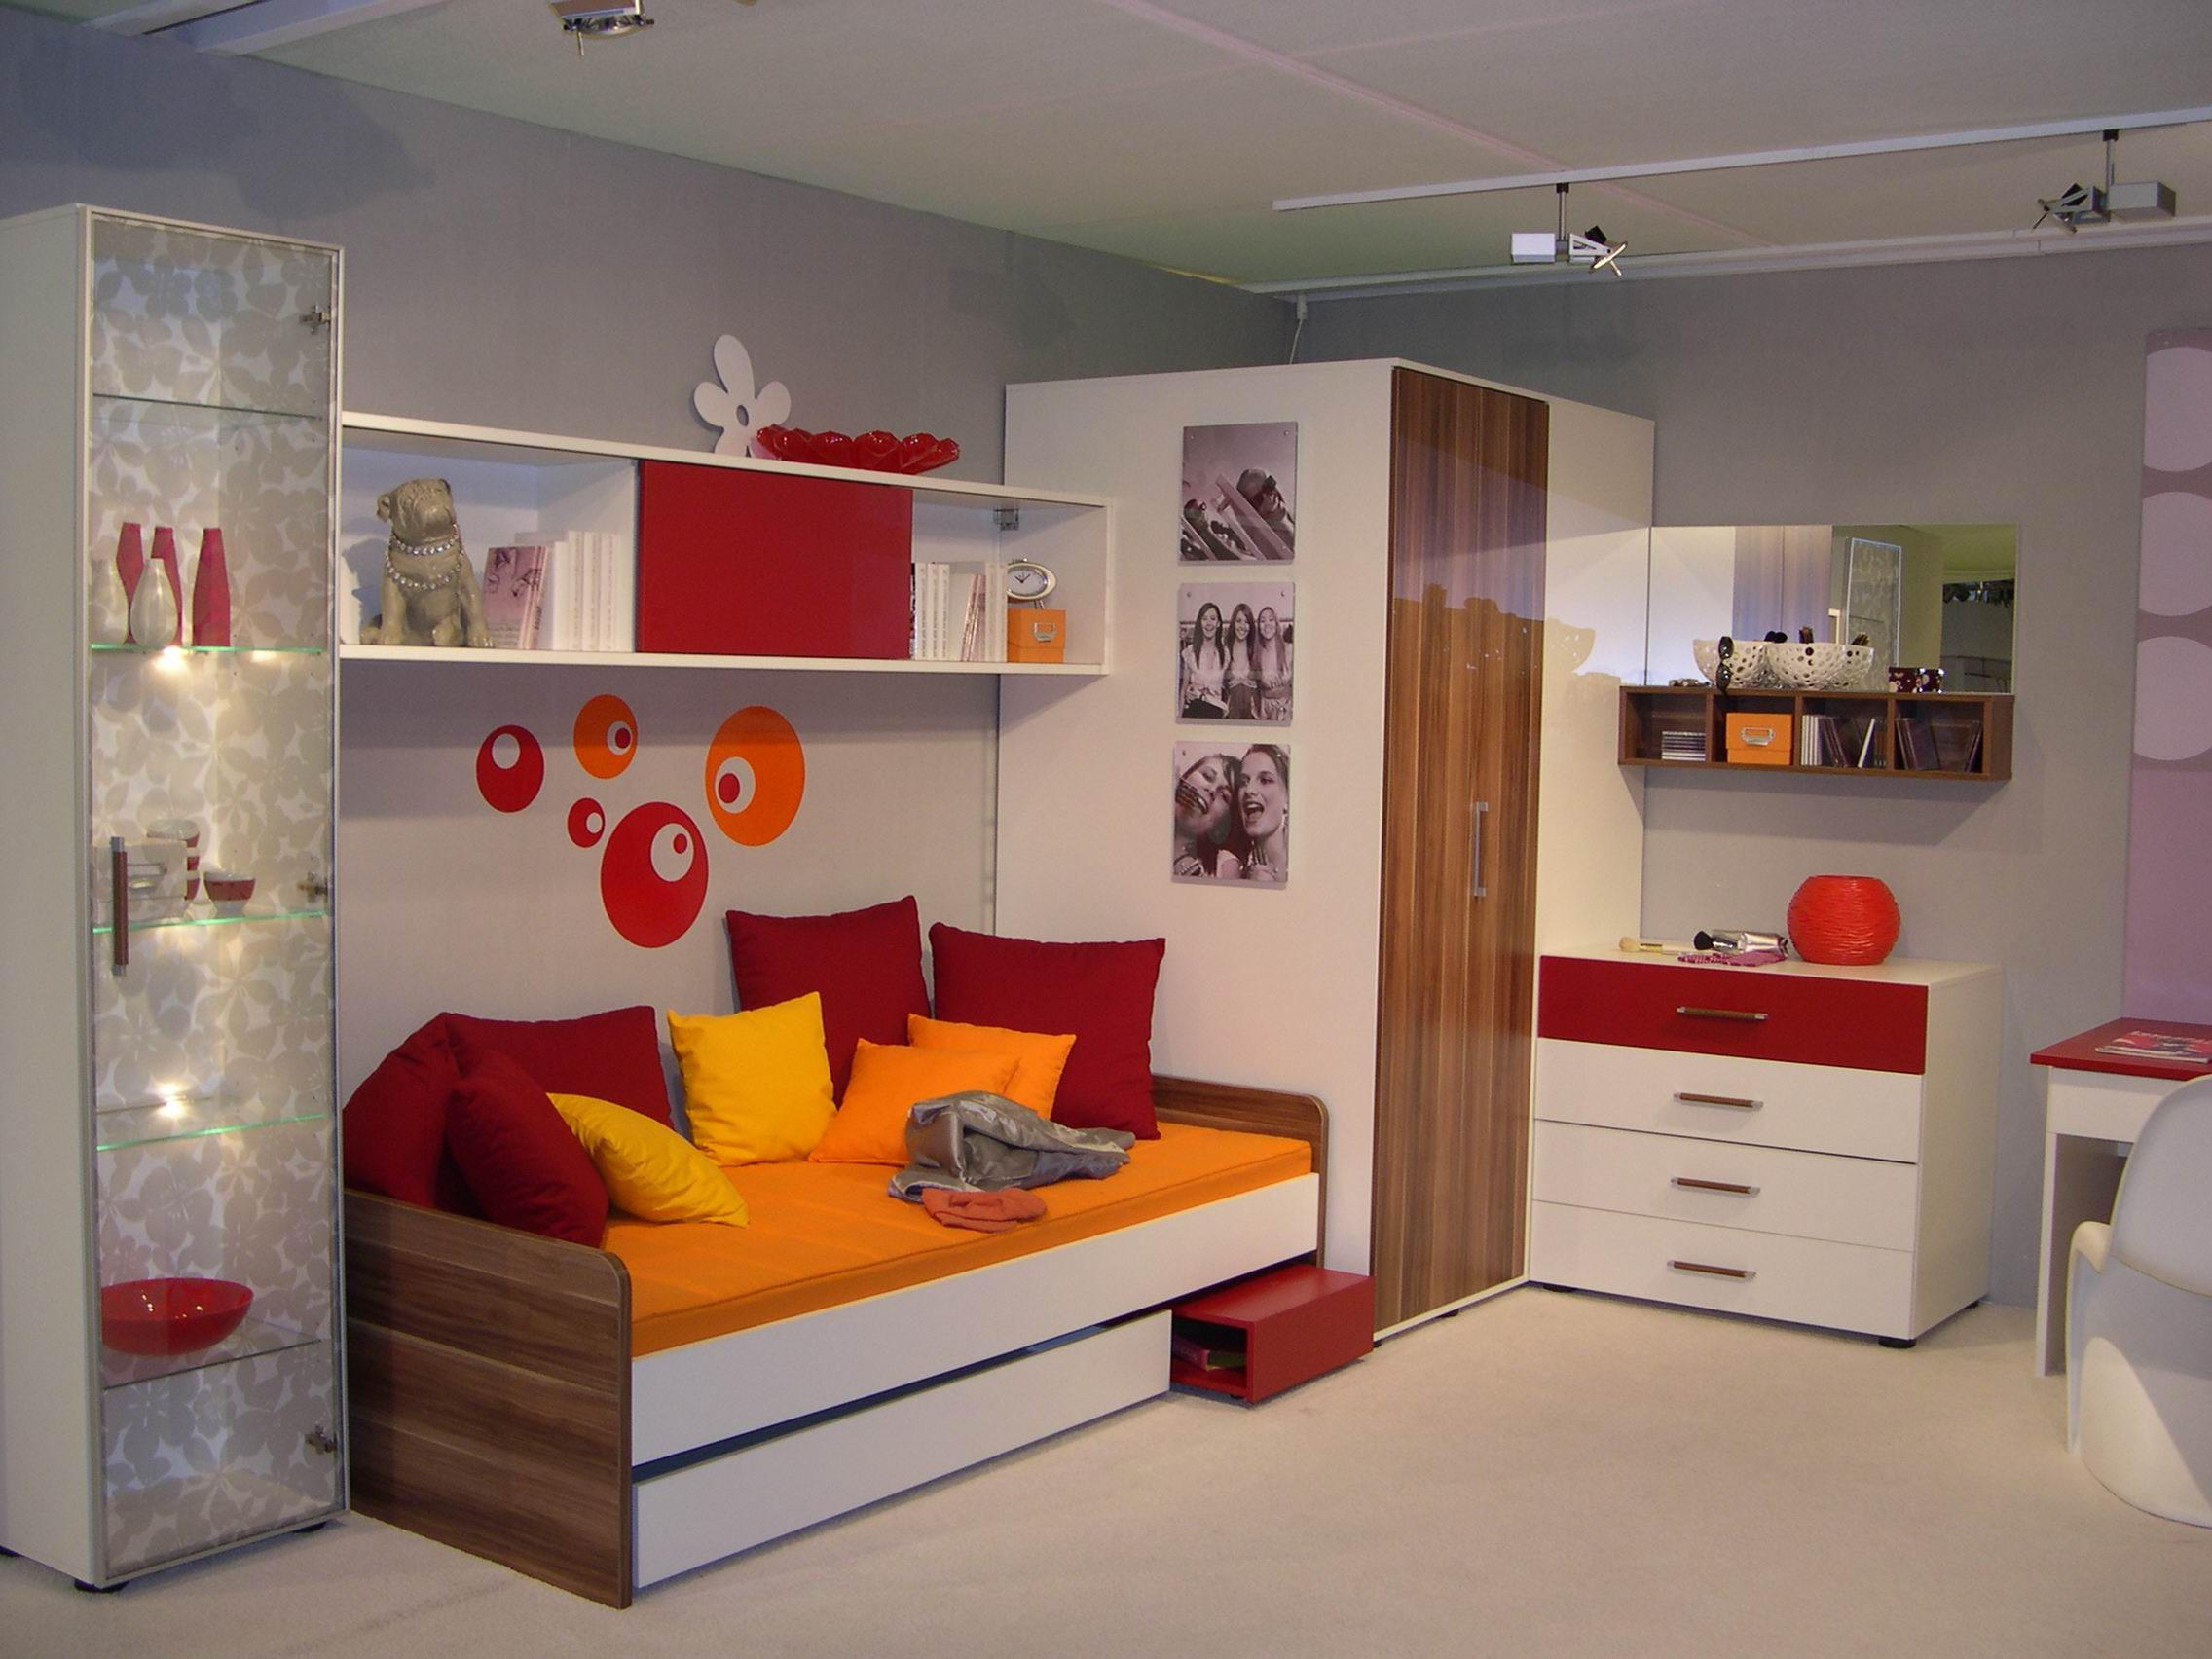 deco de chambre d adolescent. Black Bedroom Furniture Sets. Home Design Ideas